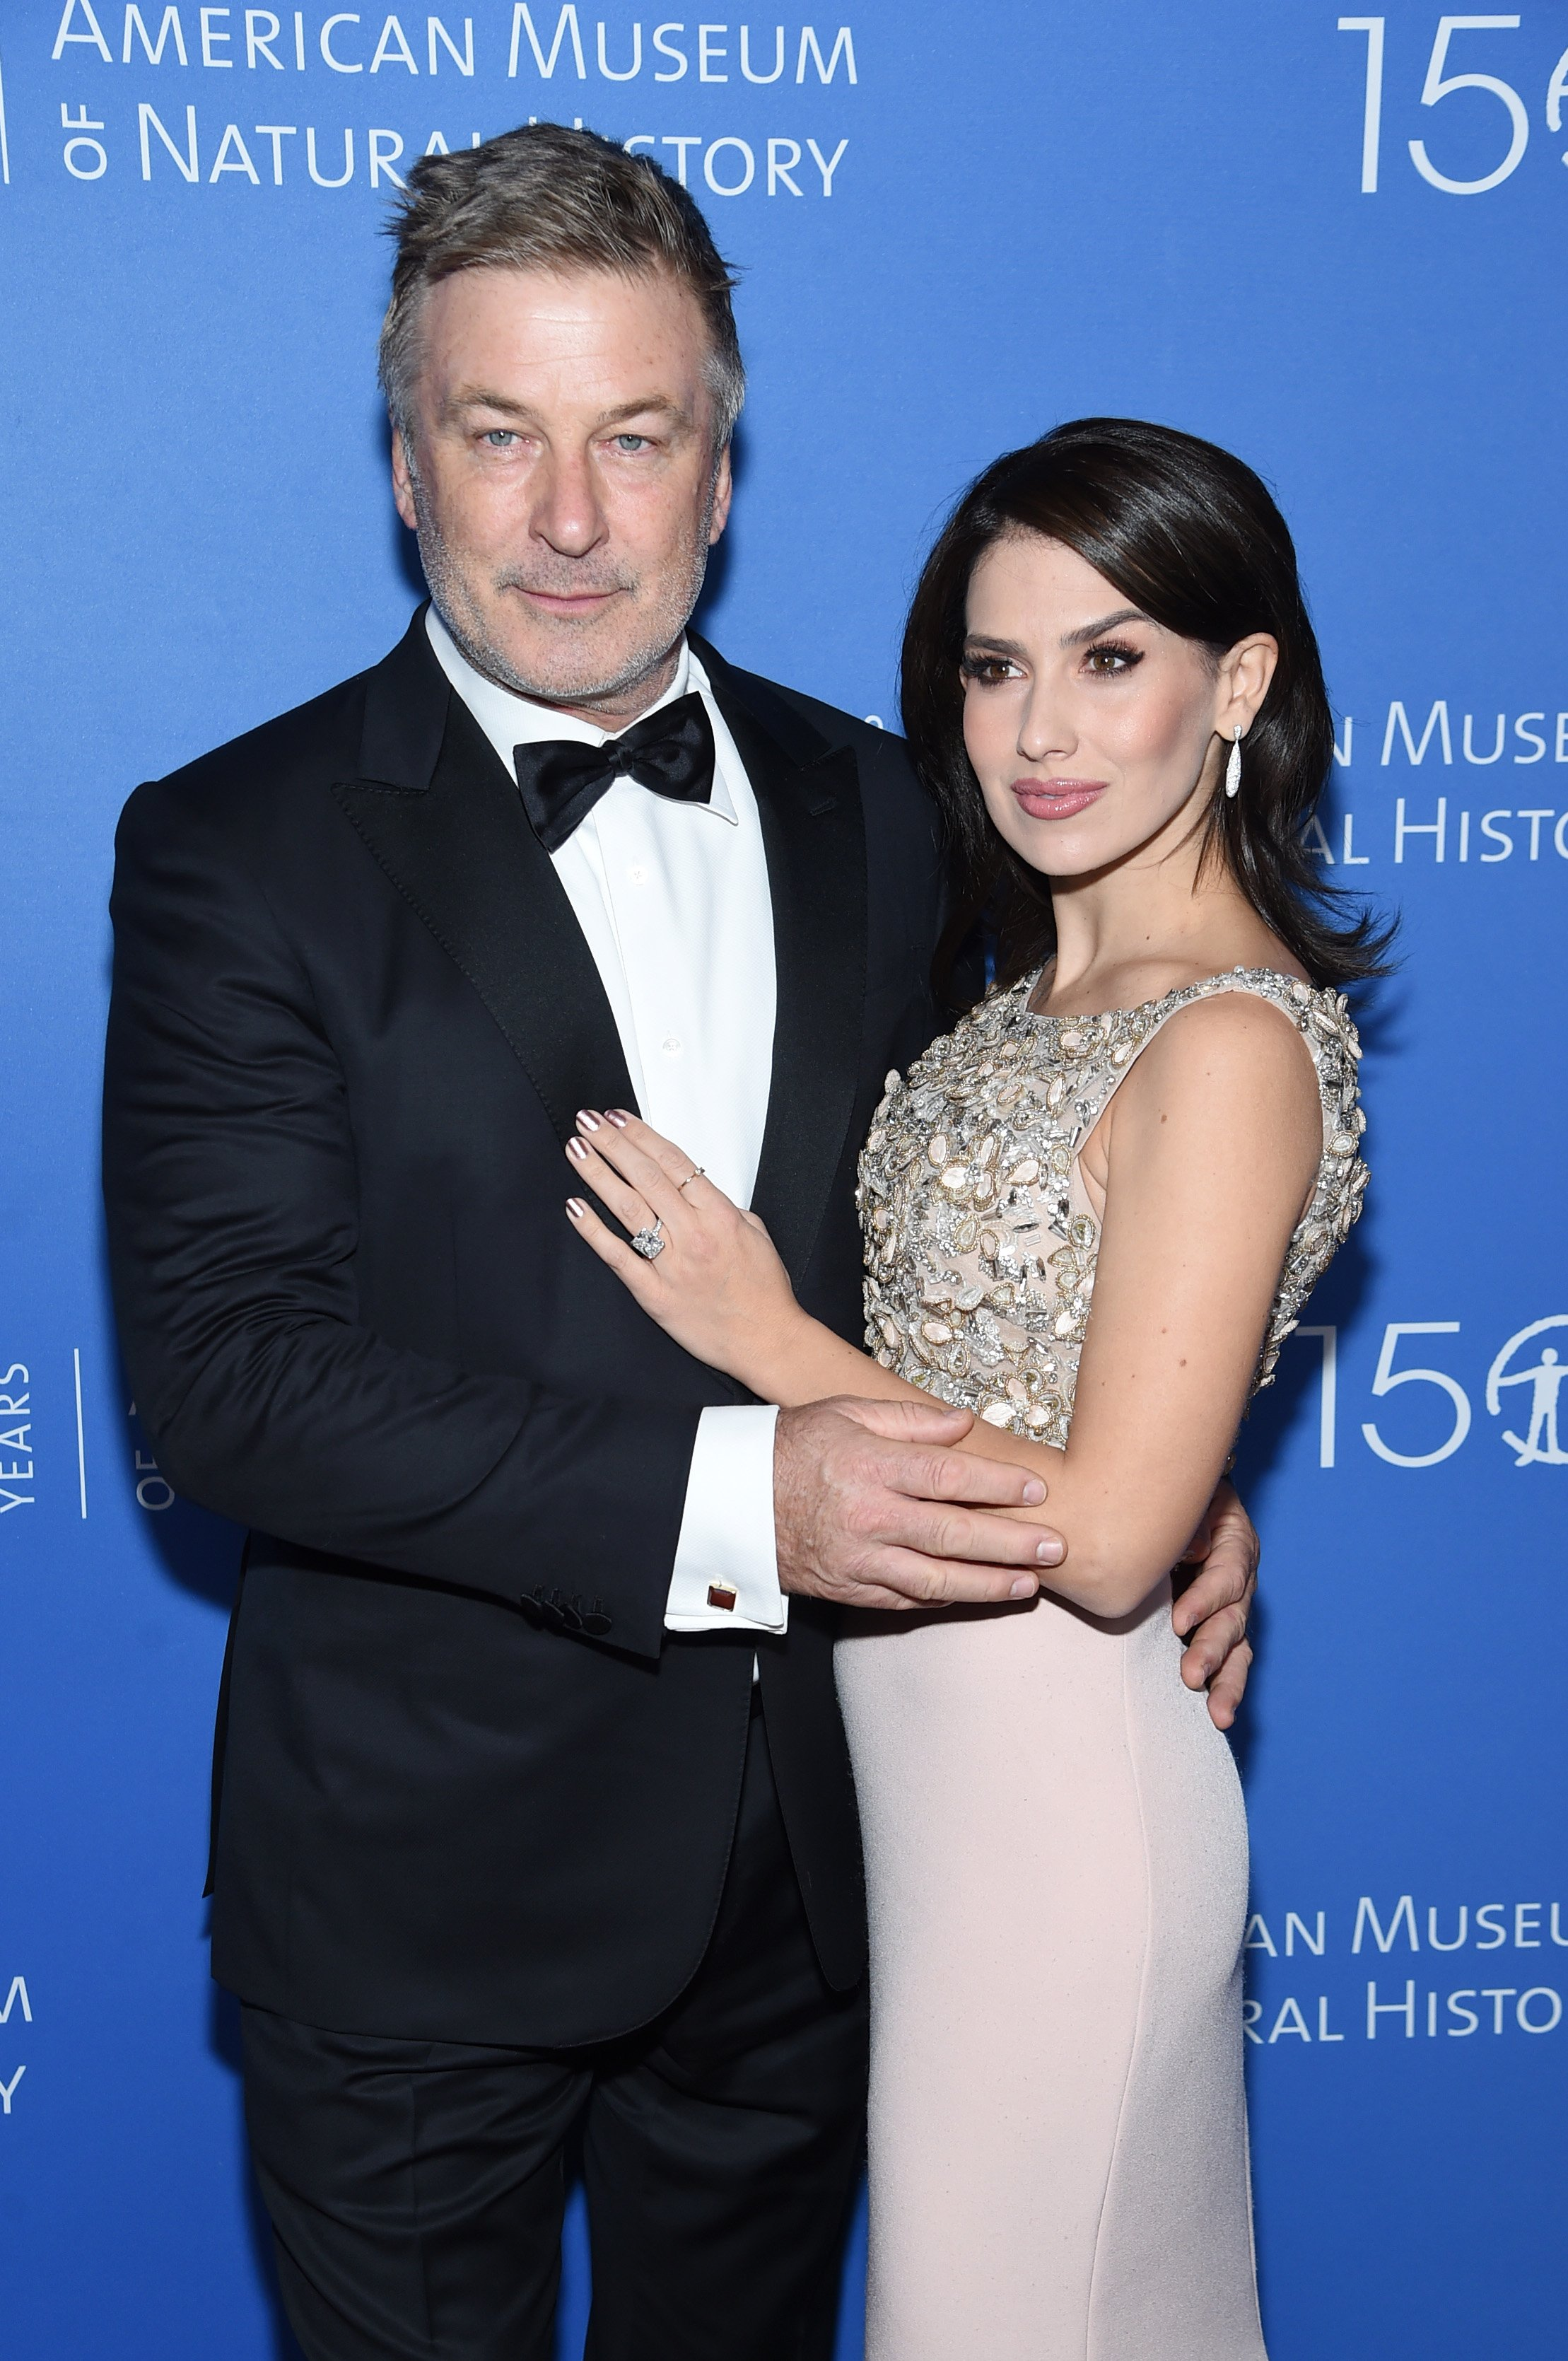 Alec Baldwin and Hilaria Baldwin attend the American Museum Of Natural History 2019 Gala on November 21, 2019, in New York City. | Source: Getty Images.